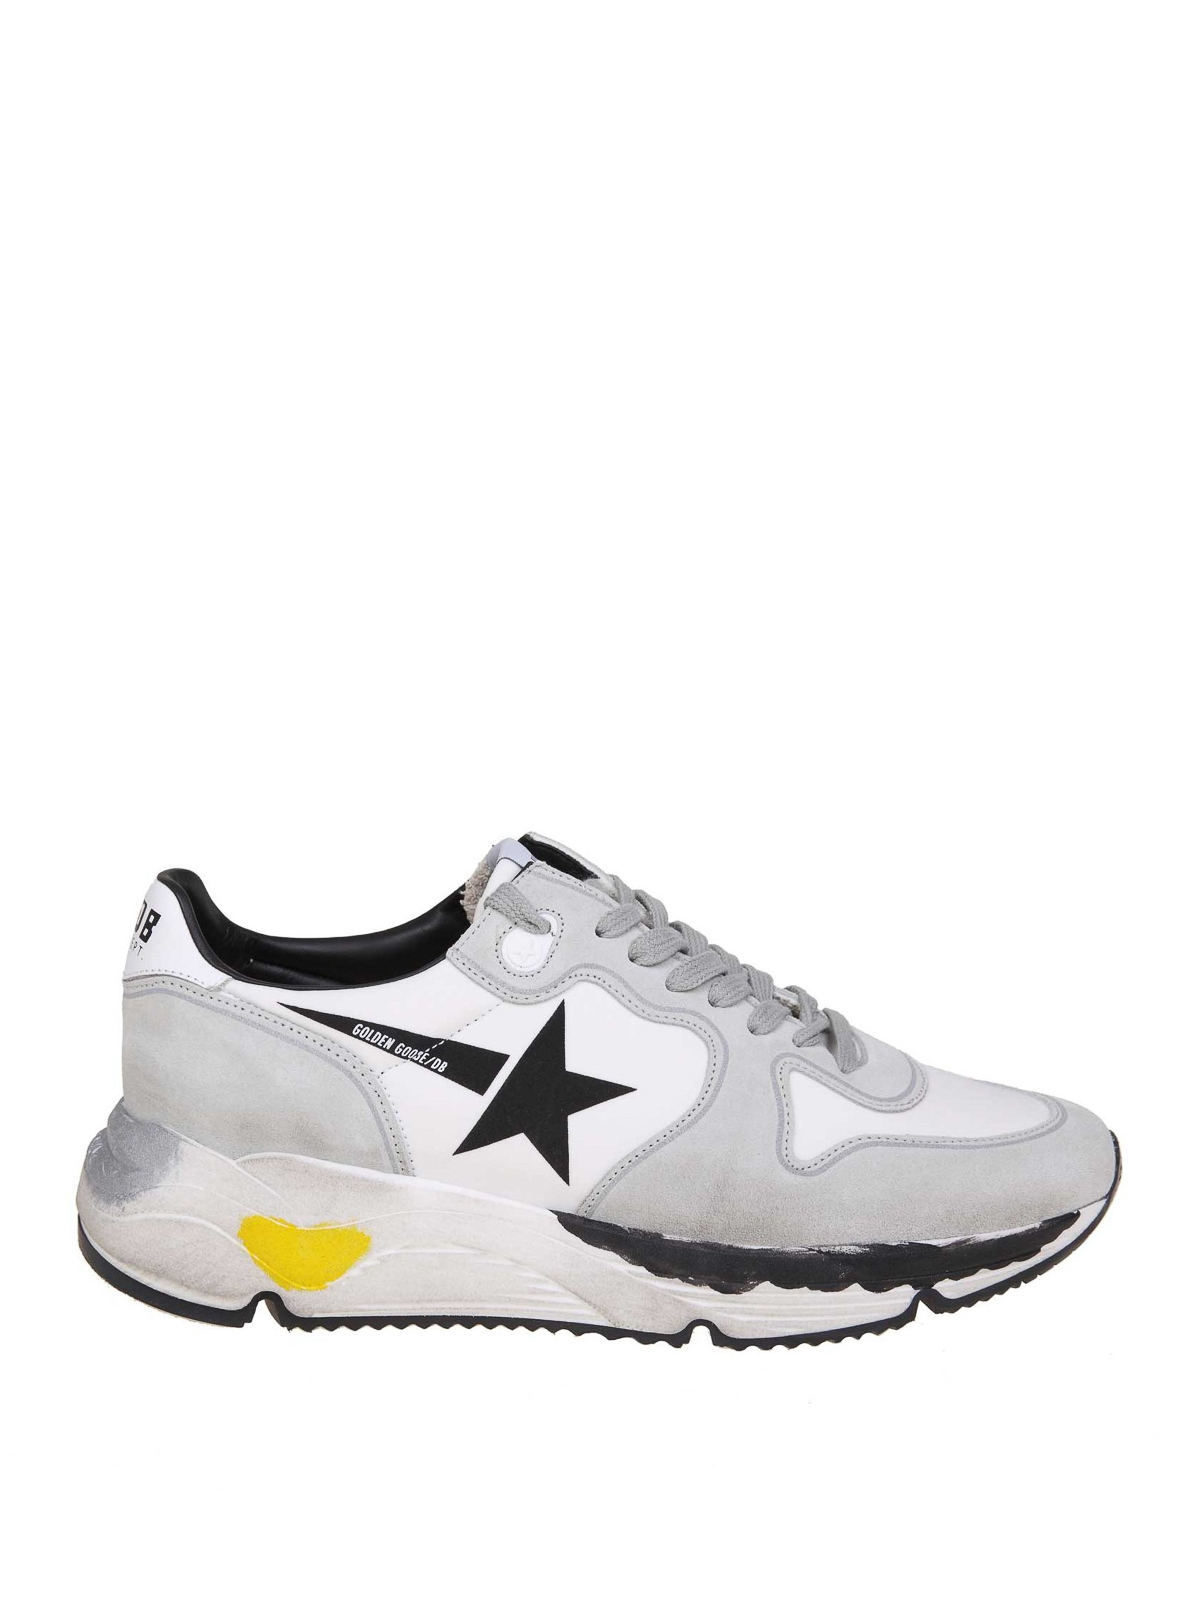 Golden Goose RUNNING SOLE SUEDE AND LYCRA SNEAKERS